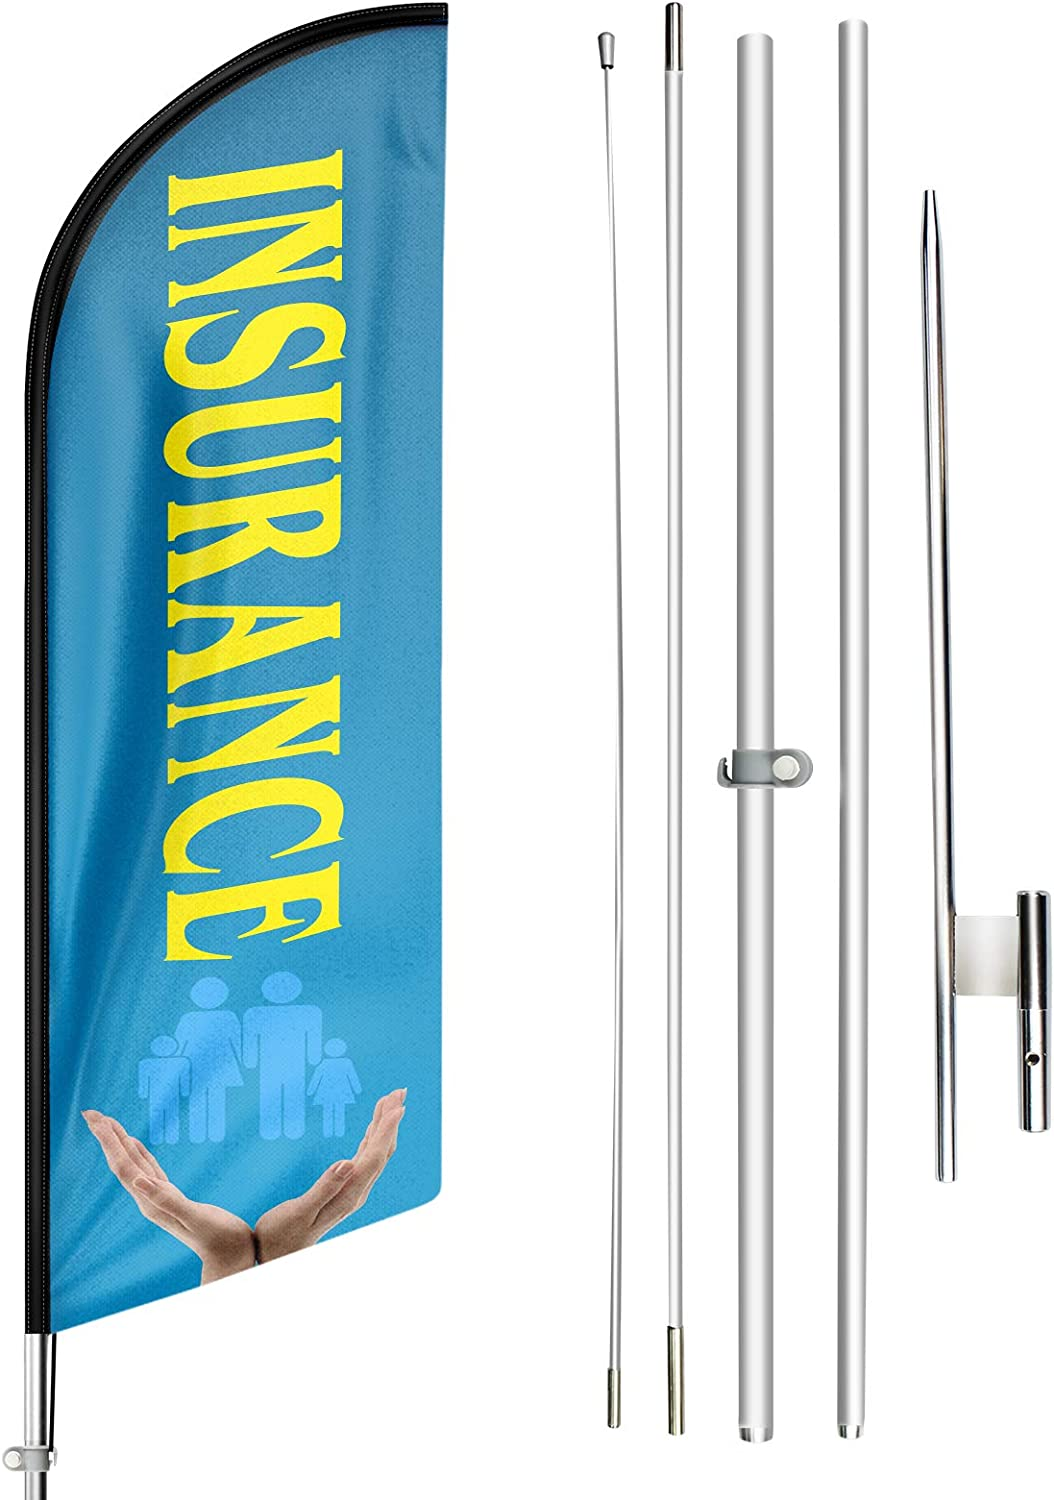 FSFLAG Swooper Flag and Pole Kit - Open Flags for Businesses -11 Ft Feather Flag for Insurance - Advertising Feather Banners Signs with Flag Pole Kit and Ground Stake